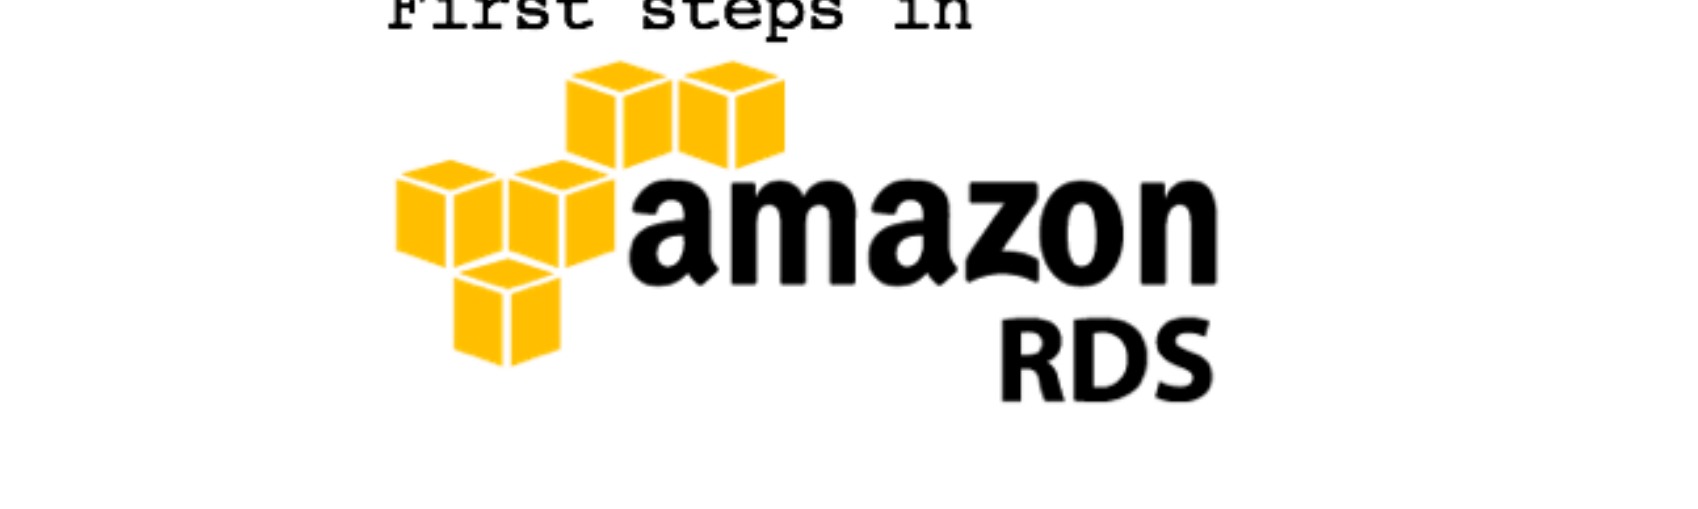 How to create and connect to your AWS RDS (Relational Database